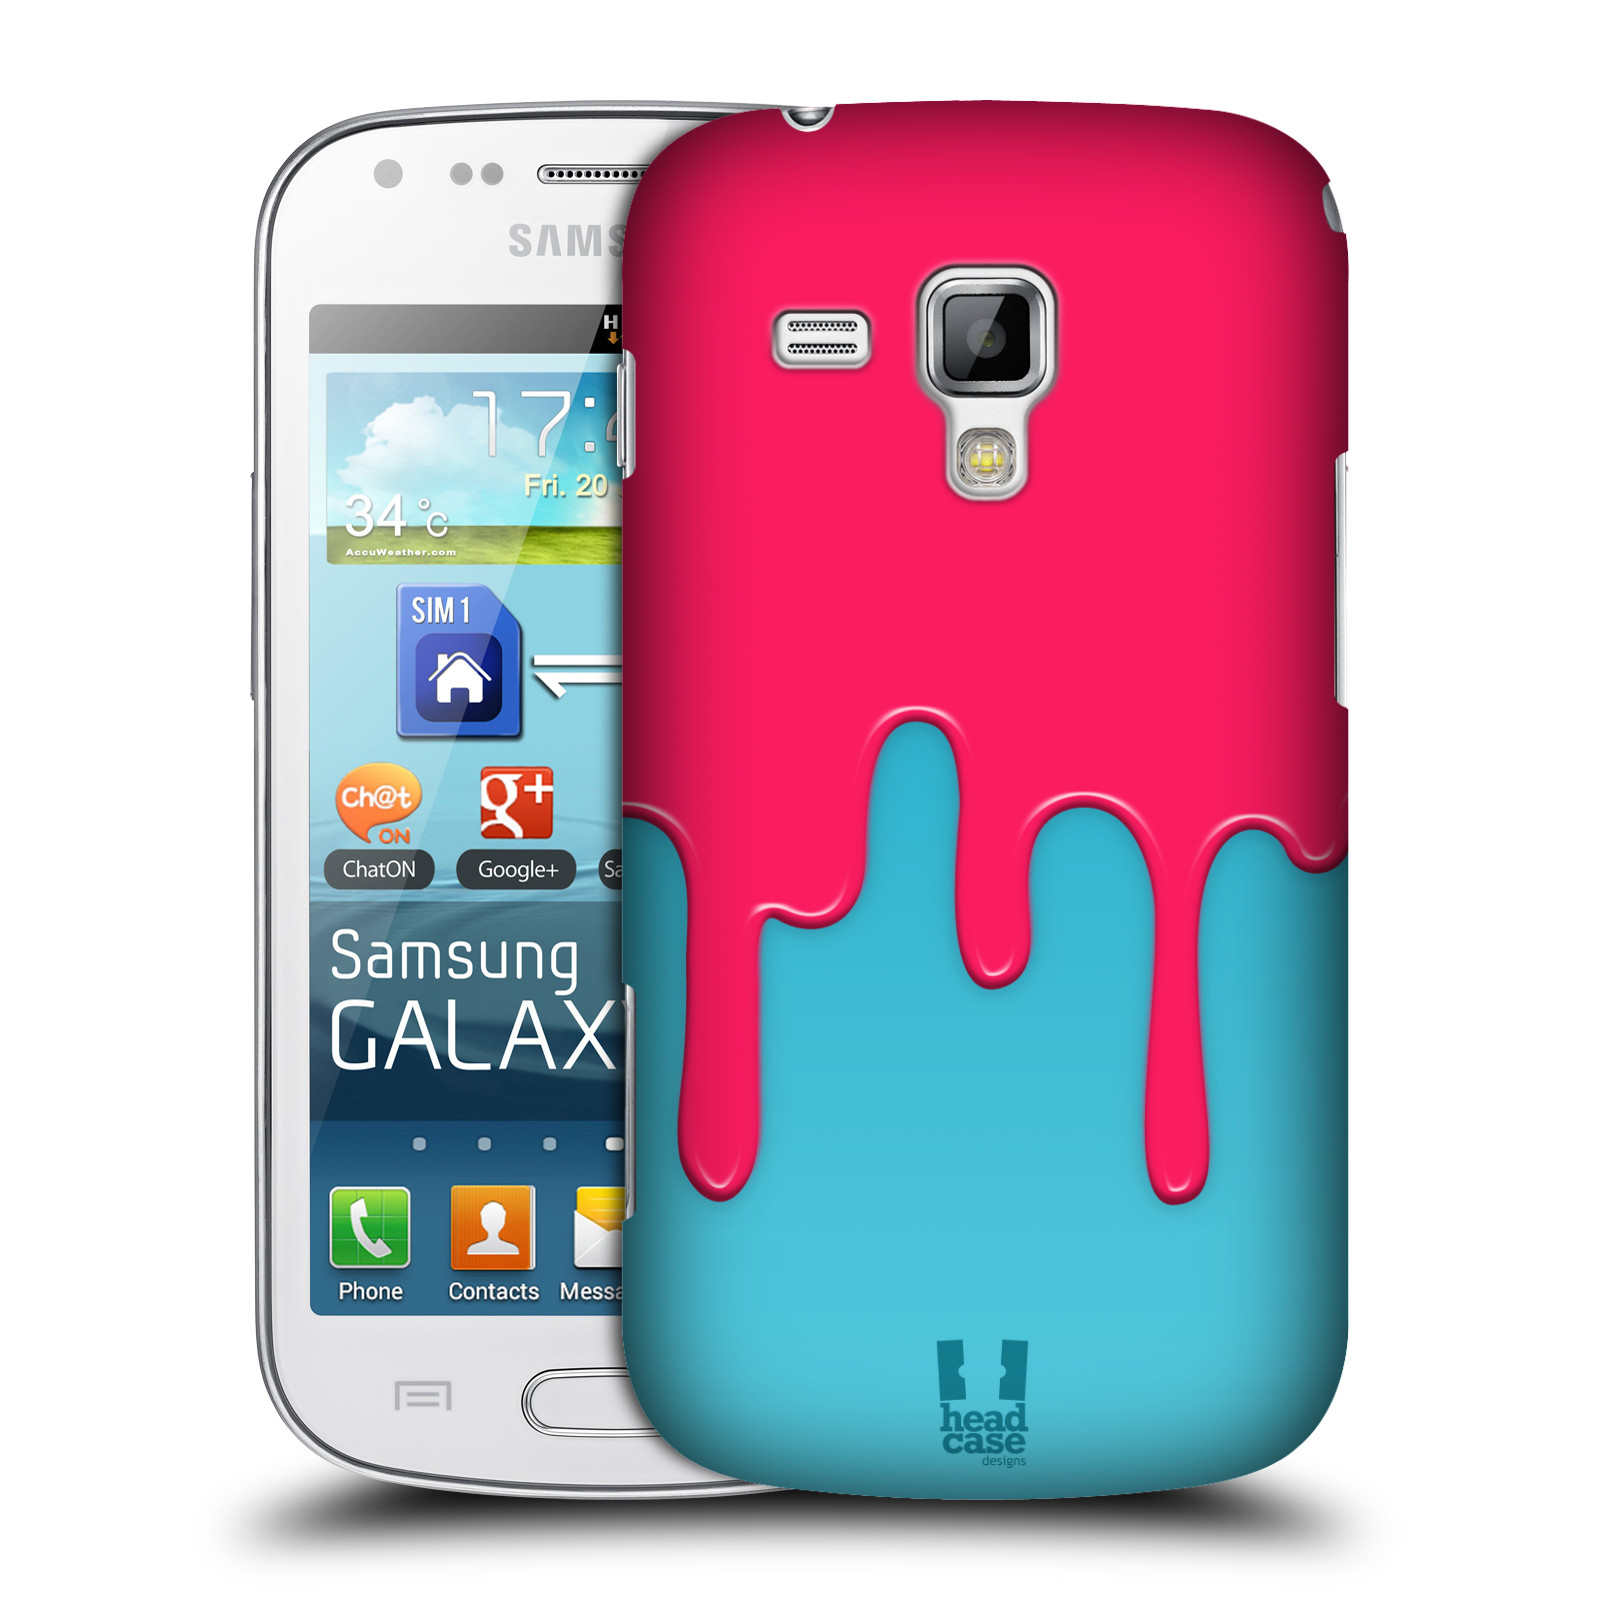 HEAD CASE DESIGNS COLOUR BLOCK MELTDOWN CASE FOR SAMSUNG GALAXY TREND S7560